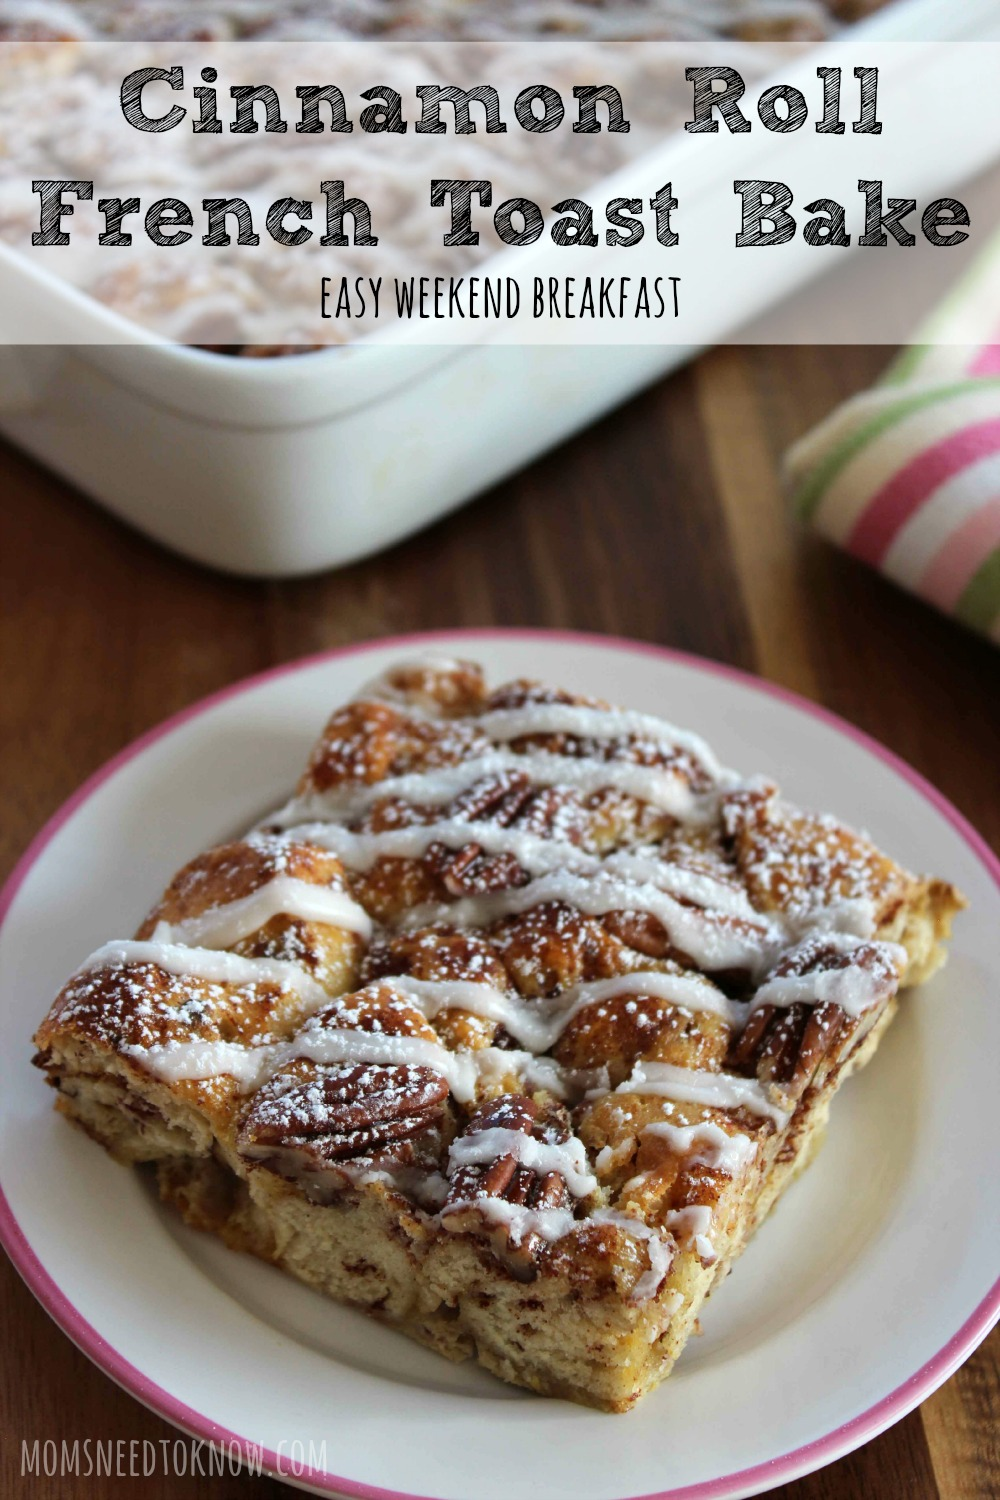 This easy Cinnamon Roll French Toast Bake is so delicious and will fill your house with the most wonderful scent!